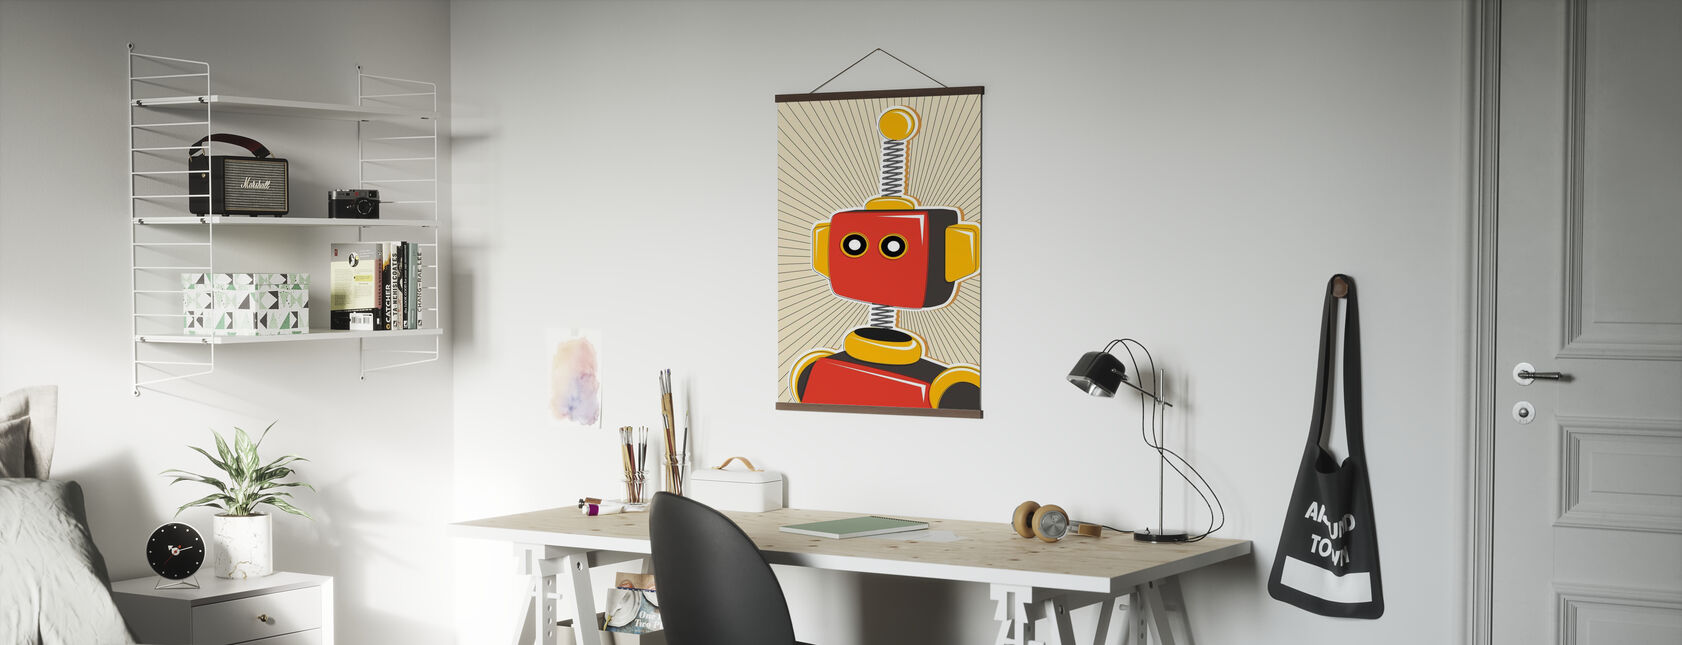 Retro Robot - Poster - Office